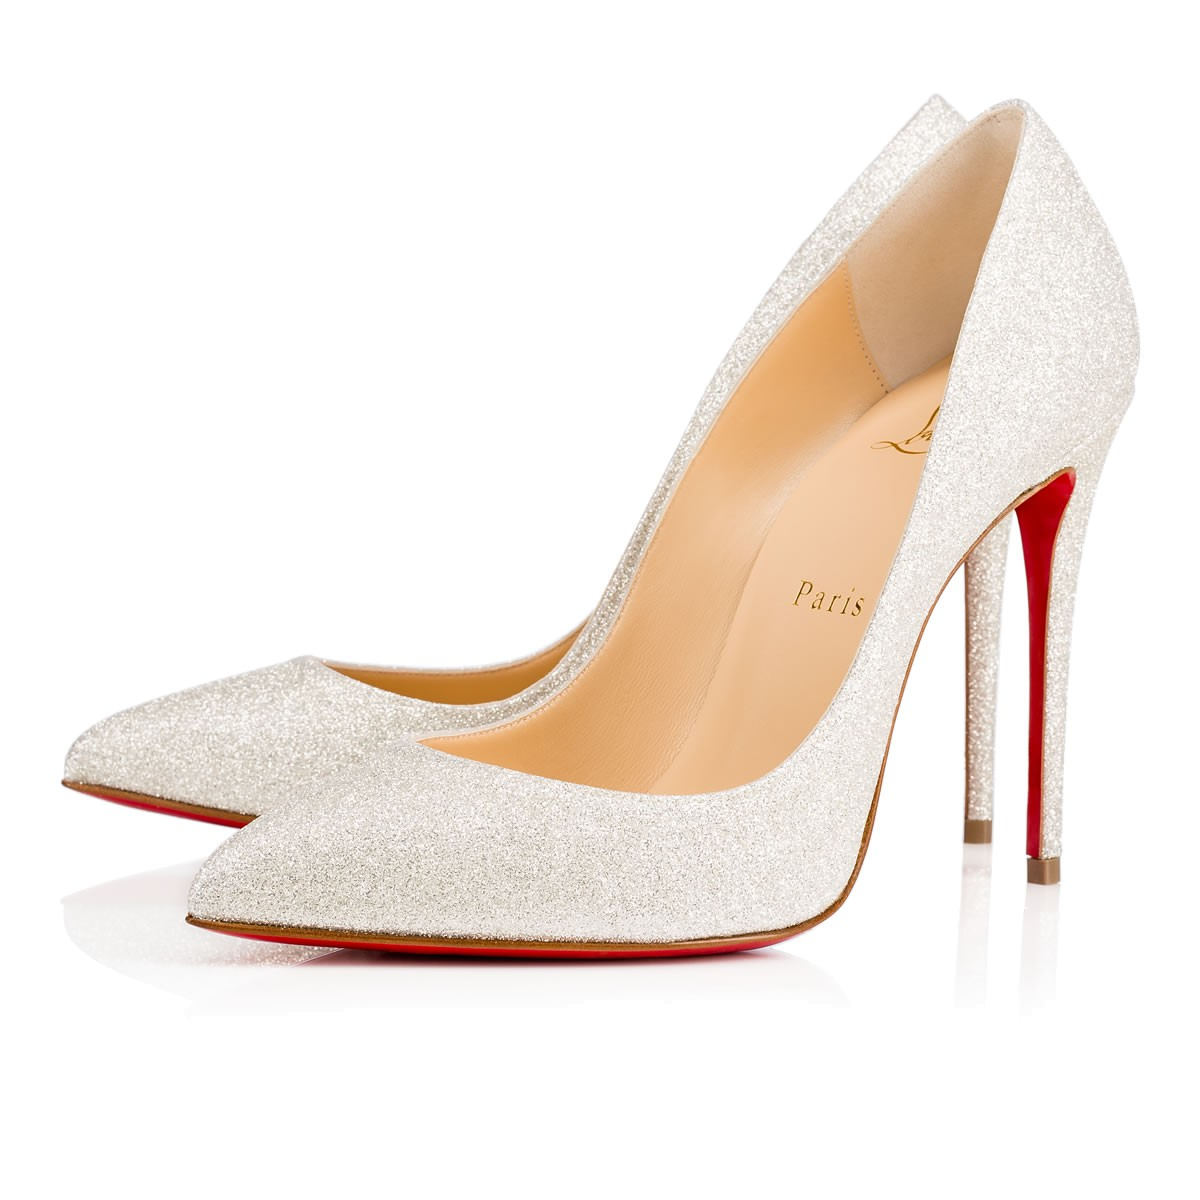 Shoes - Pigalle Follies - Christian Louboutin ...